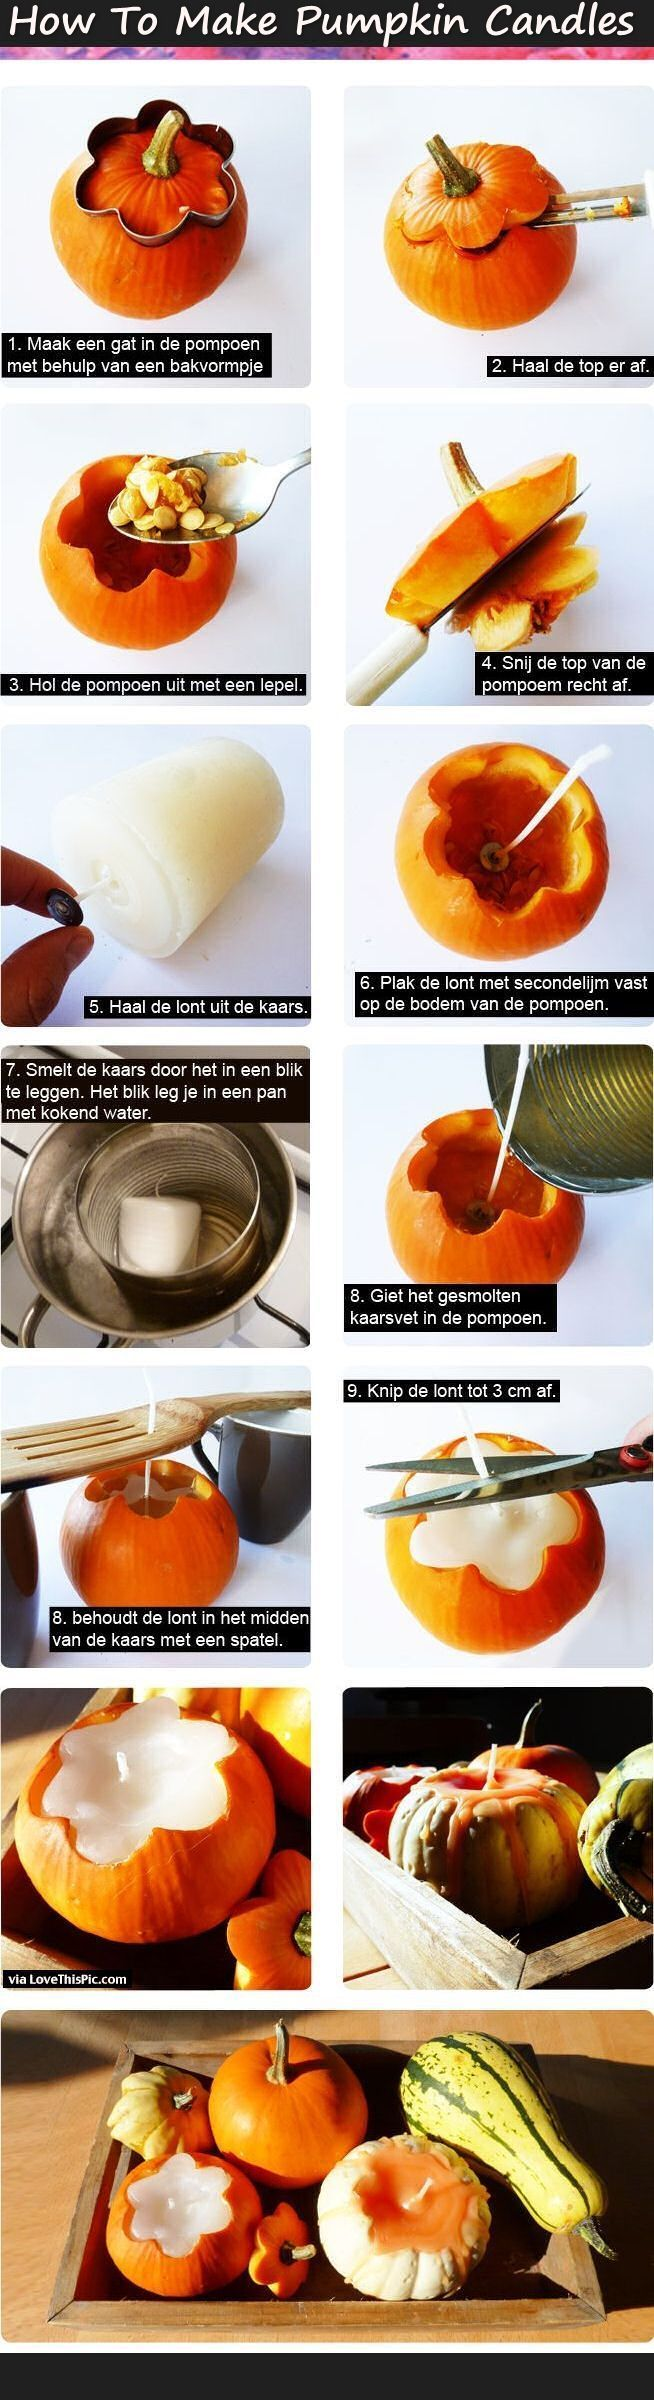 easy and fun diy crafts for fall jar candle leaves and autumn how to make pumpkin candles candles diy craft halloween crafts how to tutorials autumn crafts halloween decorations halloween crafts halloween diy halloween